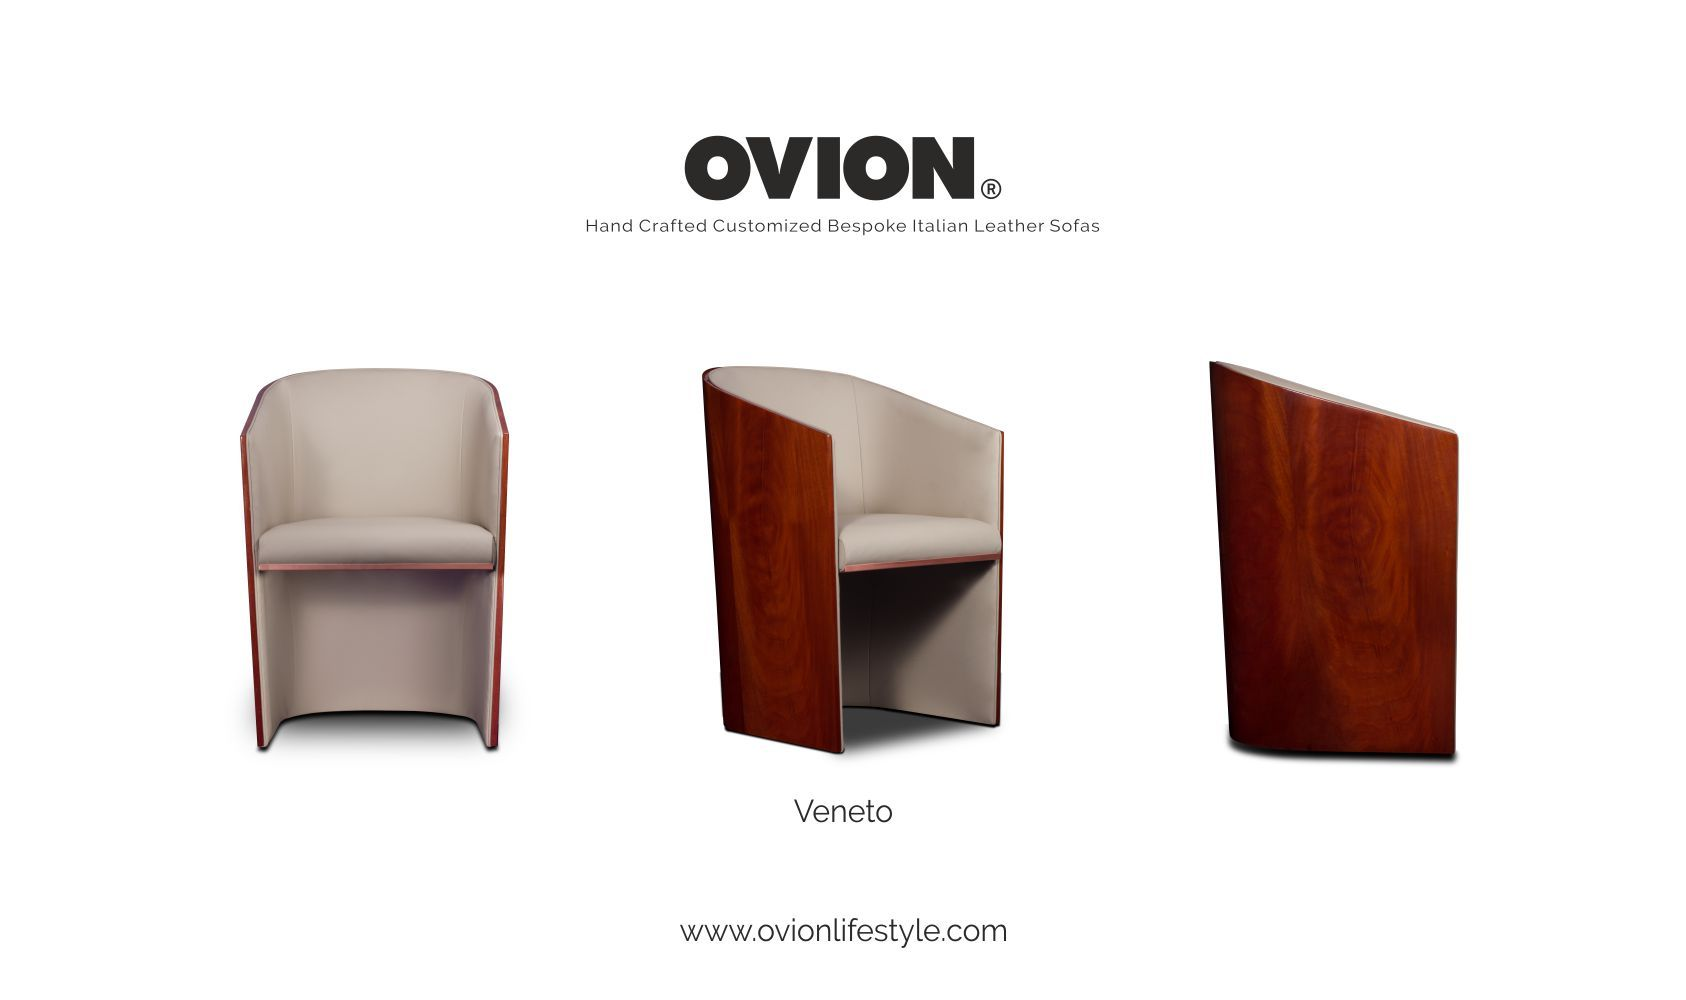 Think Sofas Think Ovion Luxury Italian Nappa Leather Chair The Wooden Clad All Around And The Sleek Char Leather Sofa Furniture Leather Sofa Leather Chair